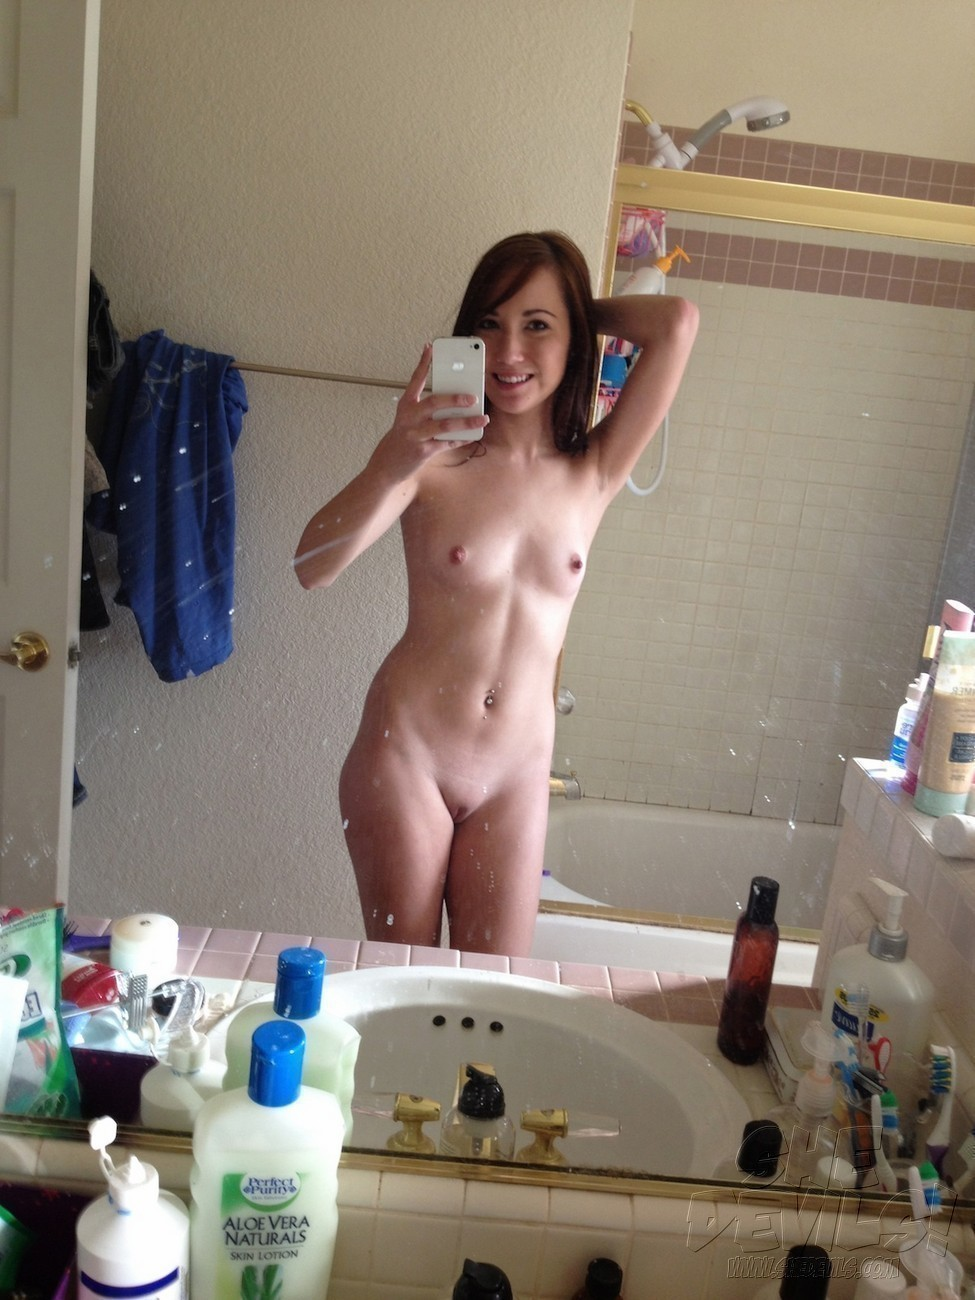 nude self pic embarrassed